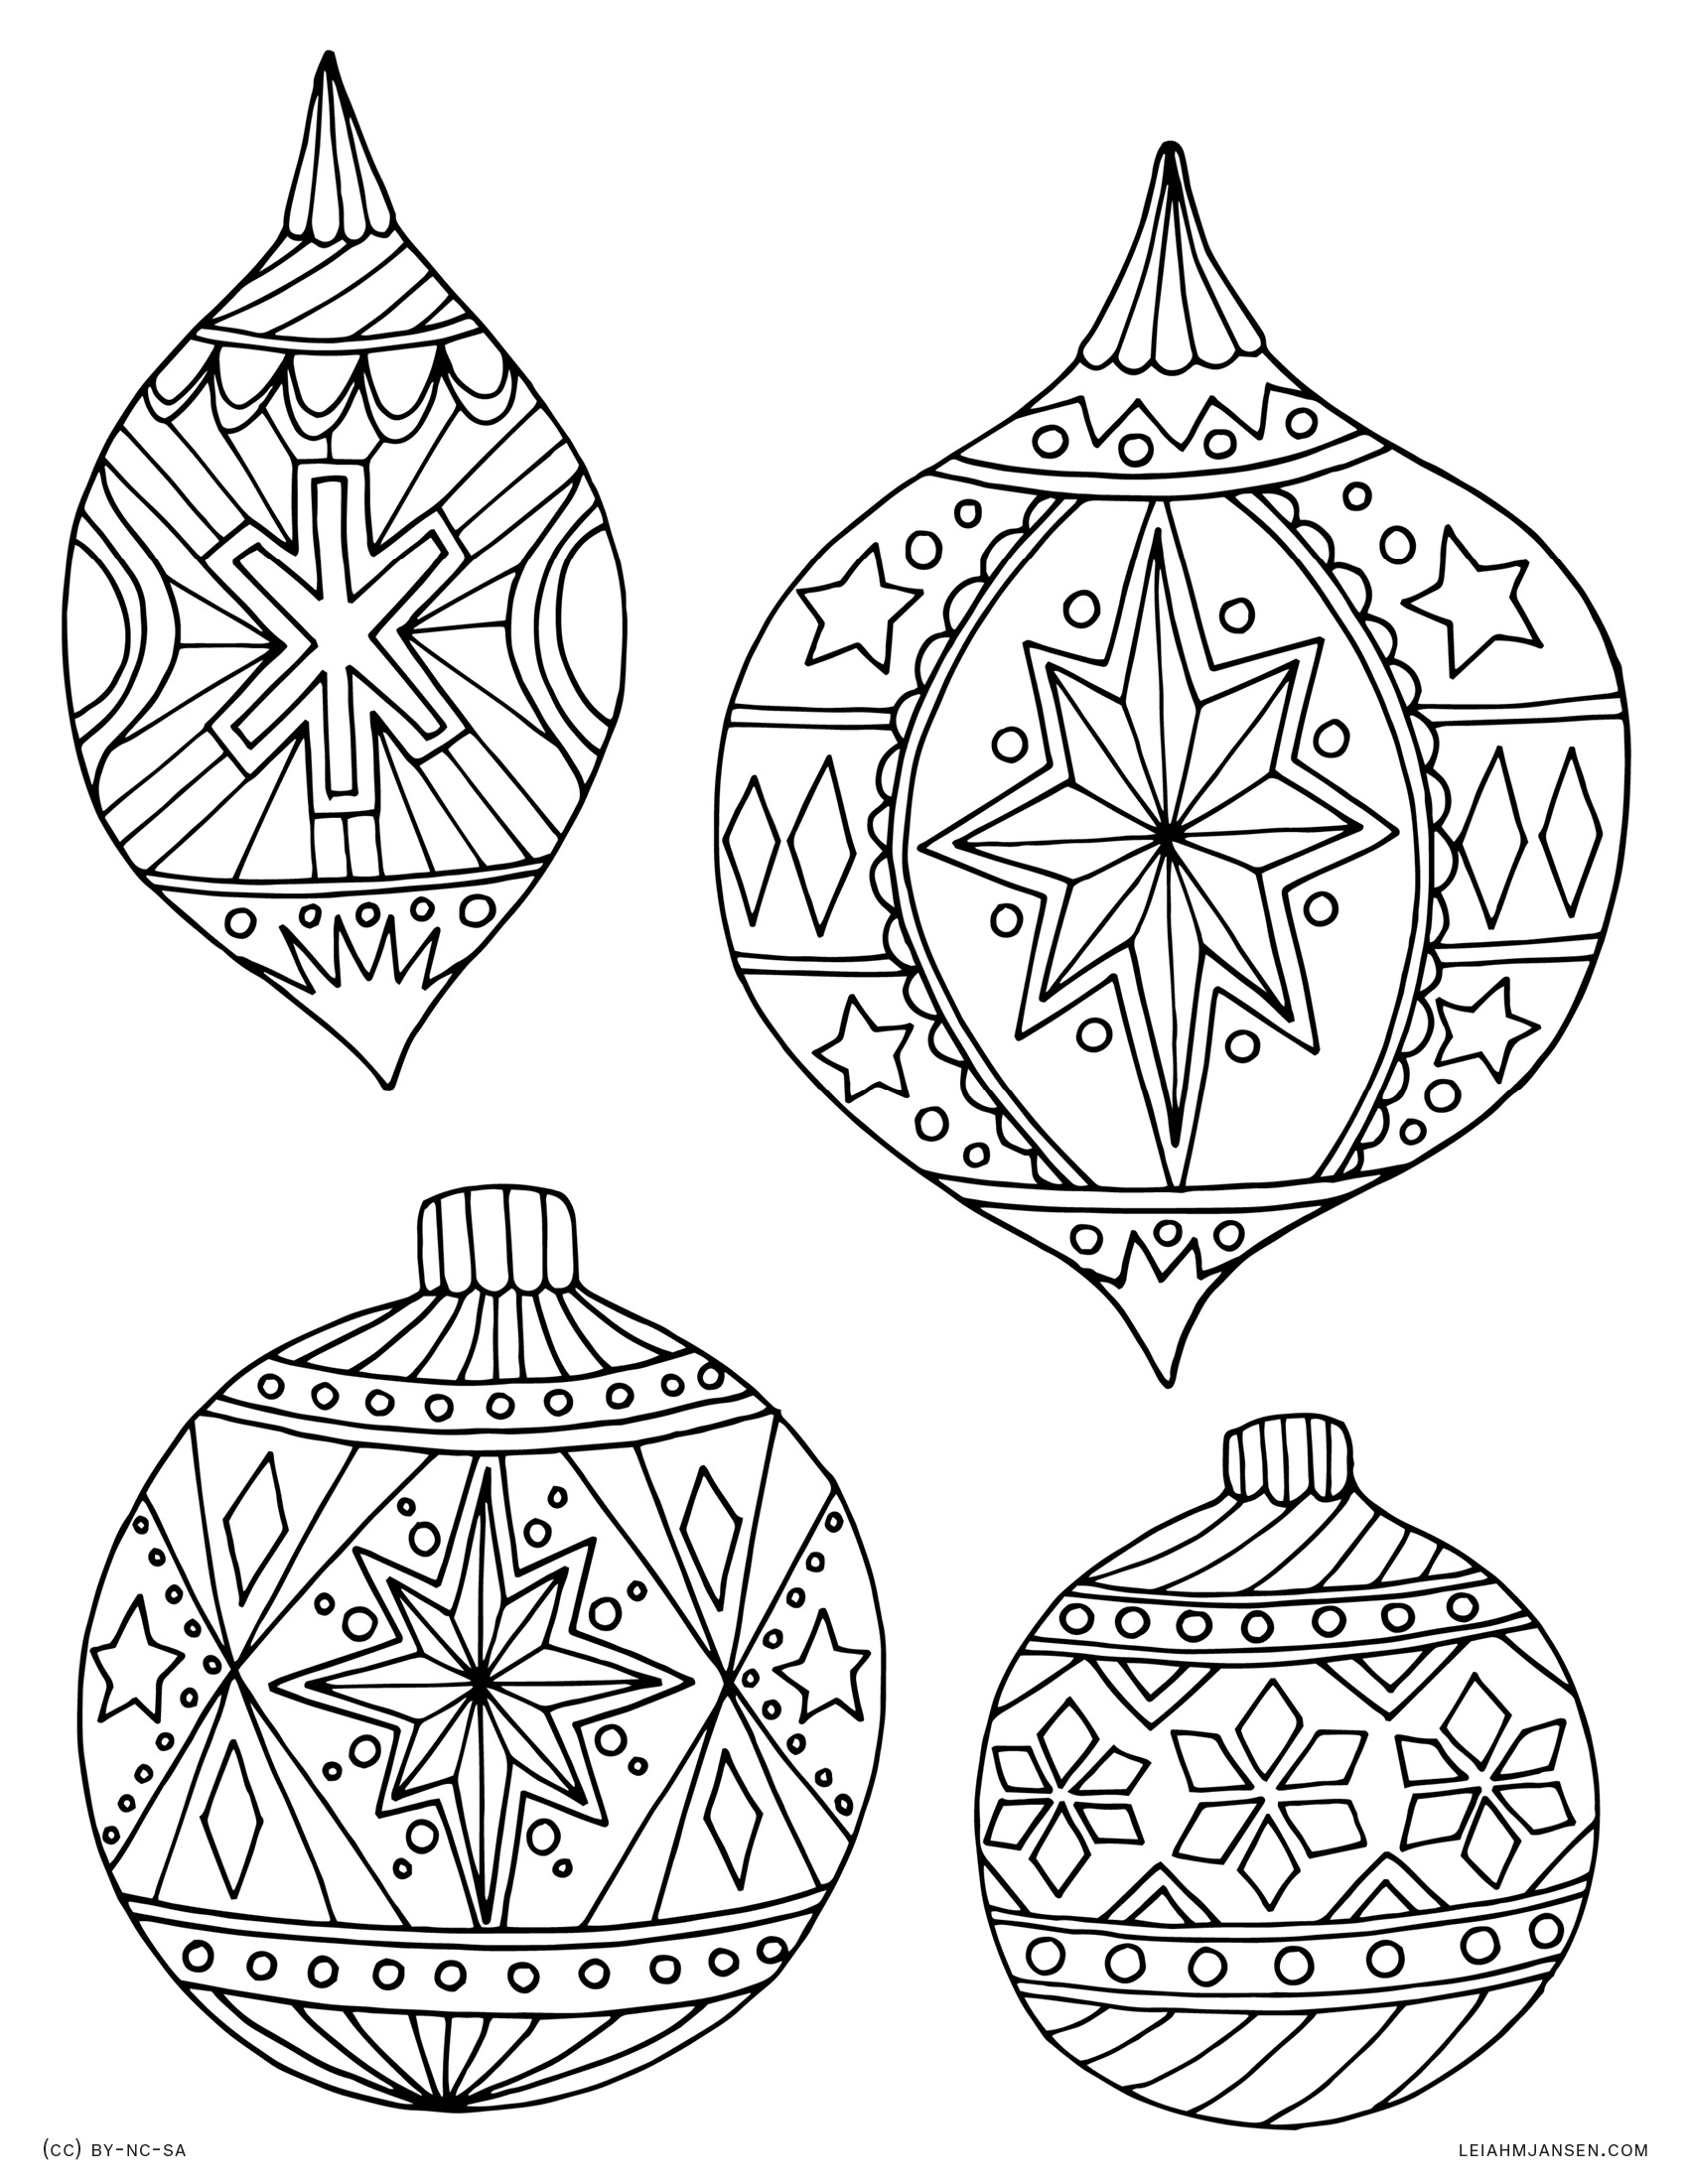 ho iday coloring pages - photo#22